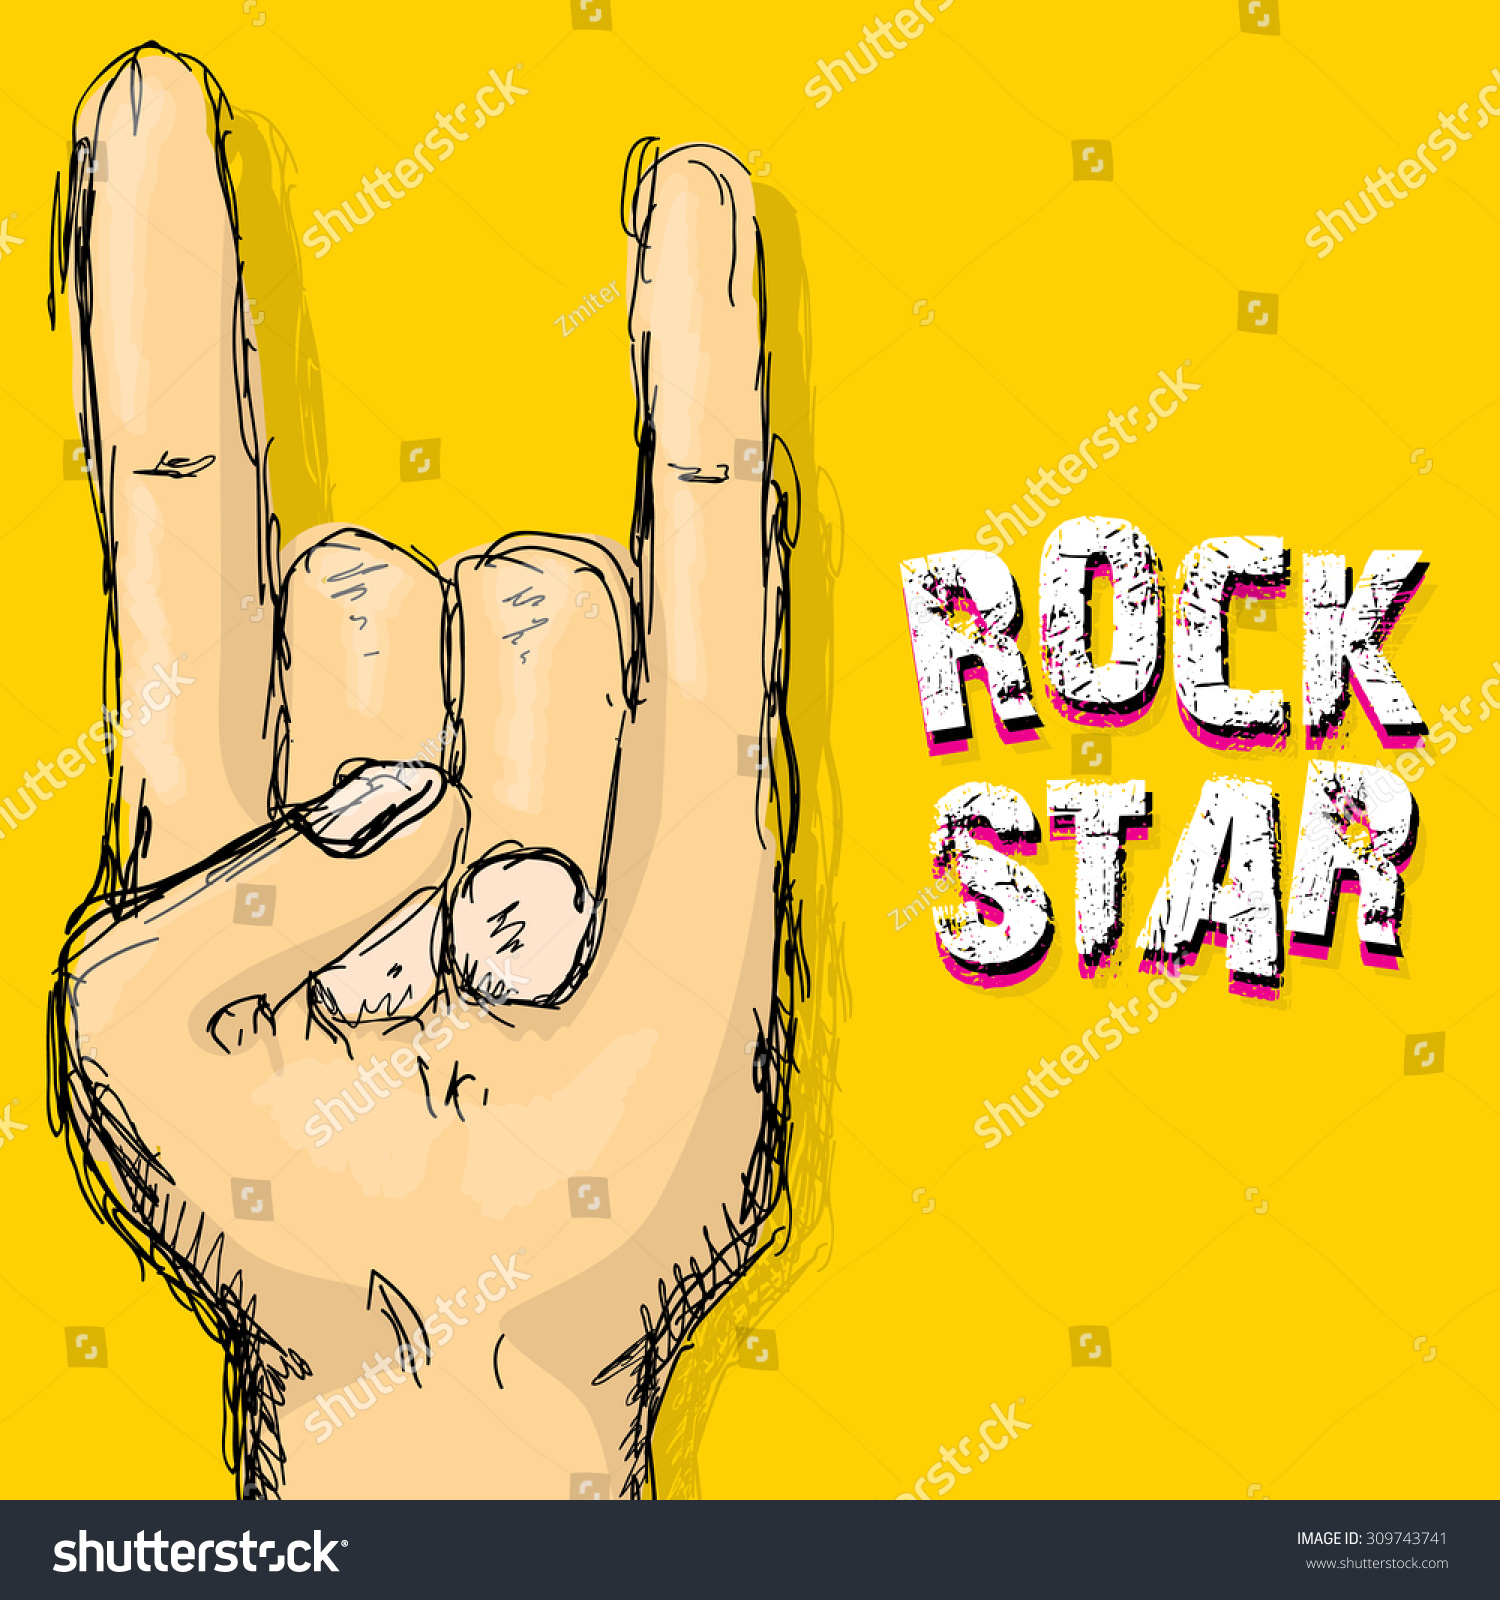 Rock n roll poster design - Save To A Lightbox